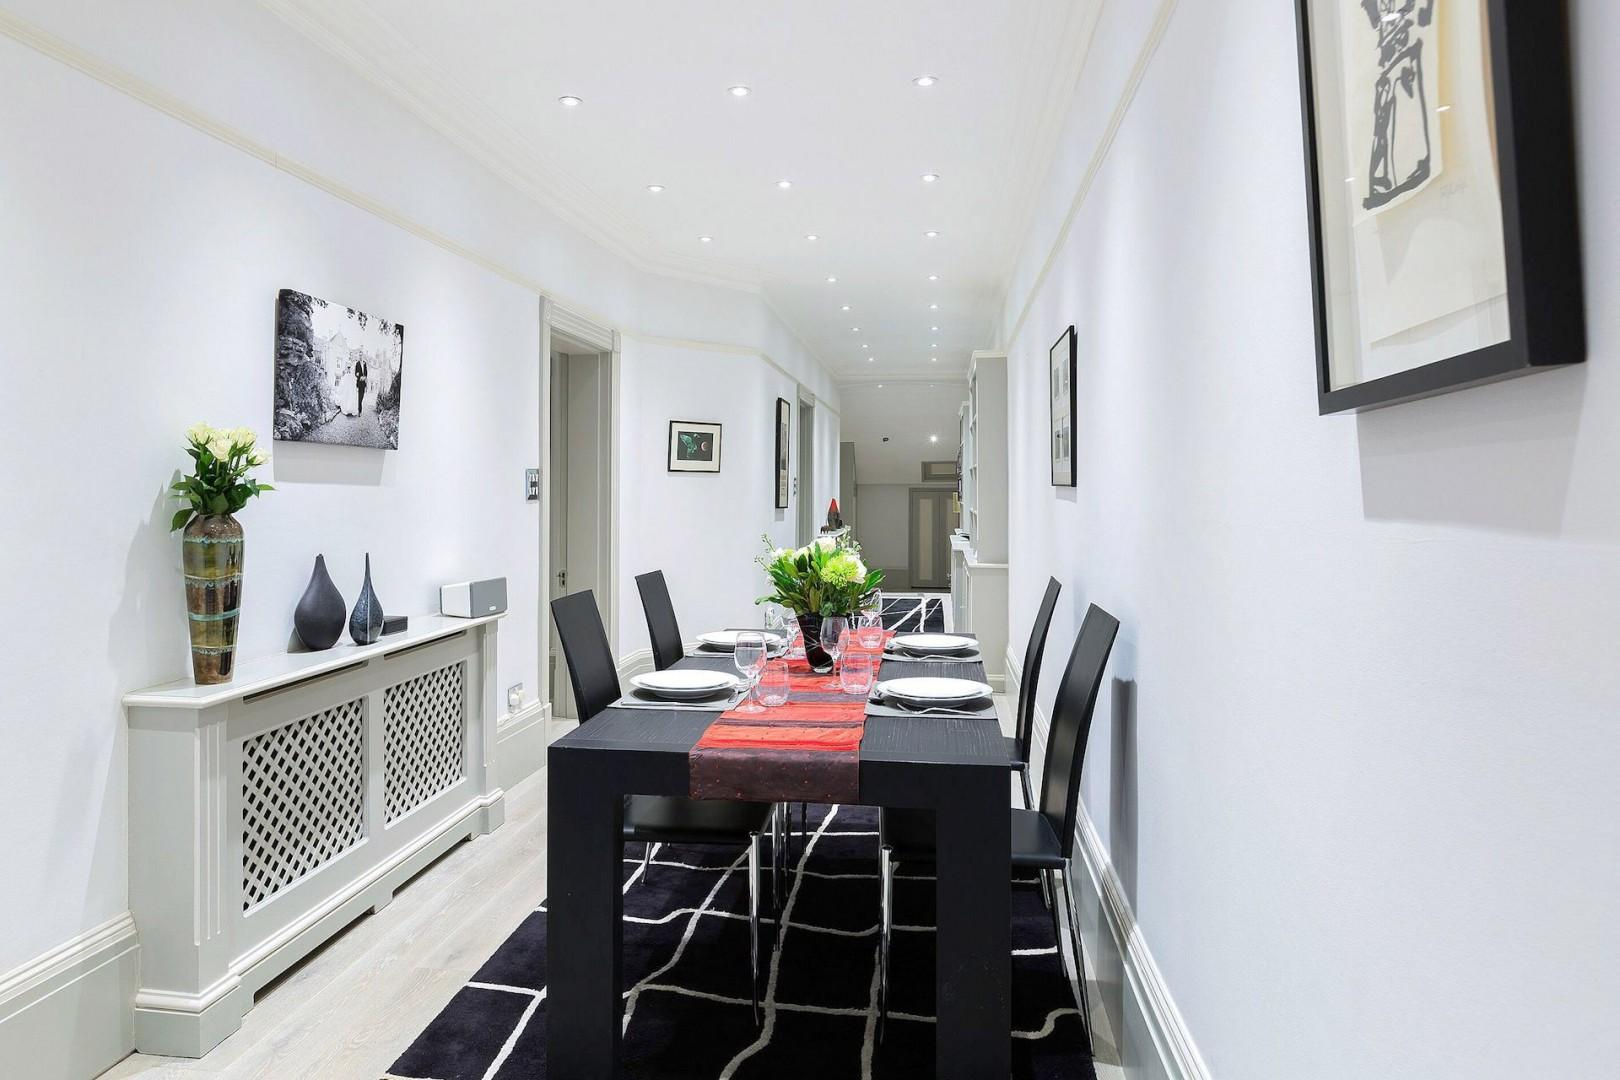 Large dining table perfect for entertaining